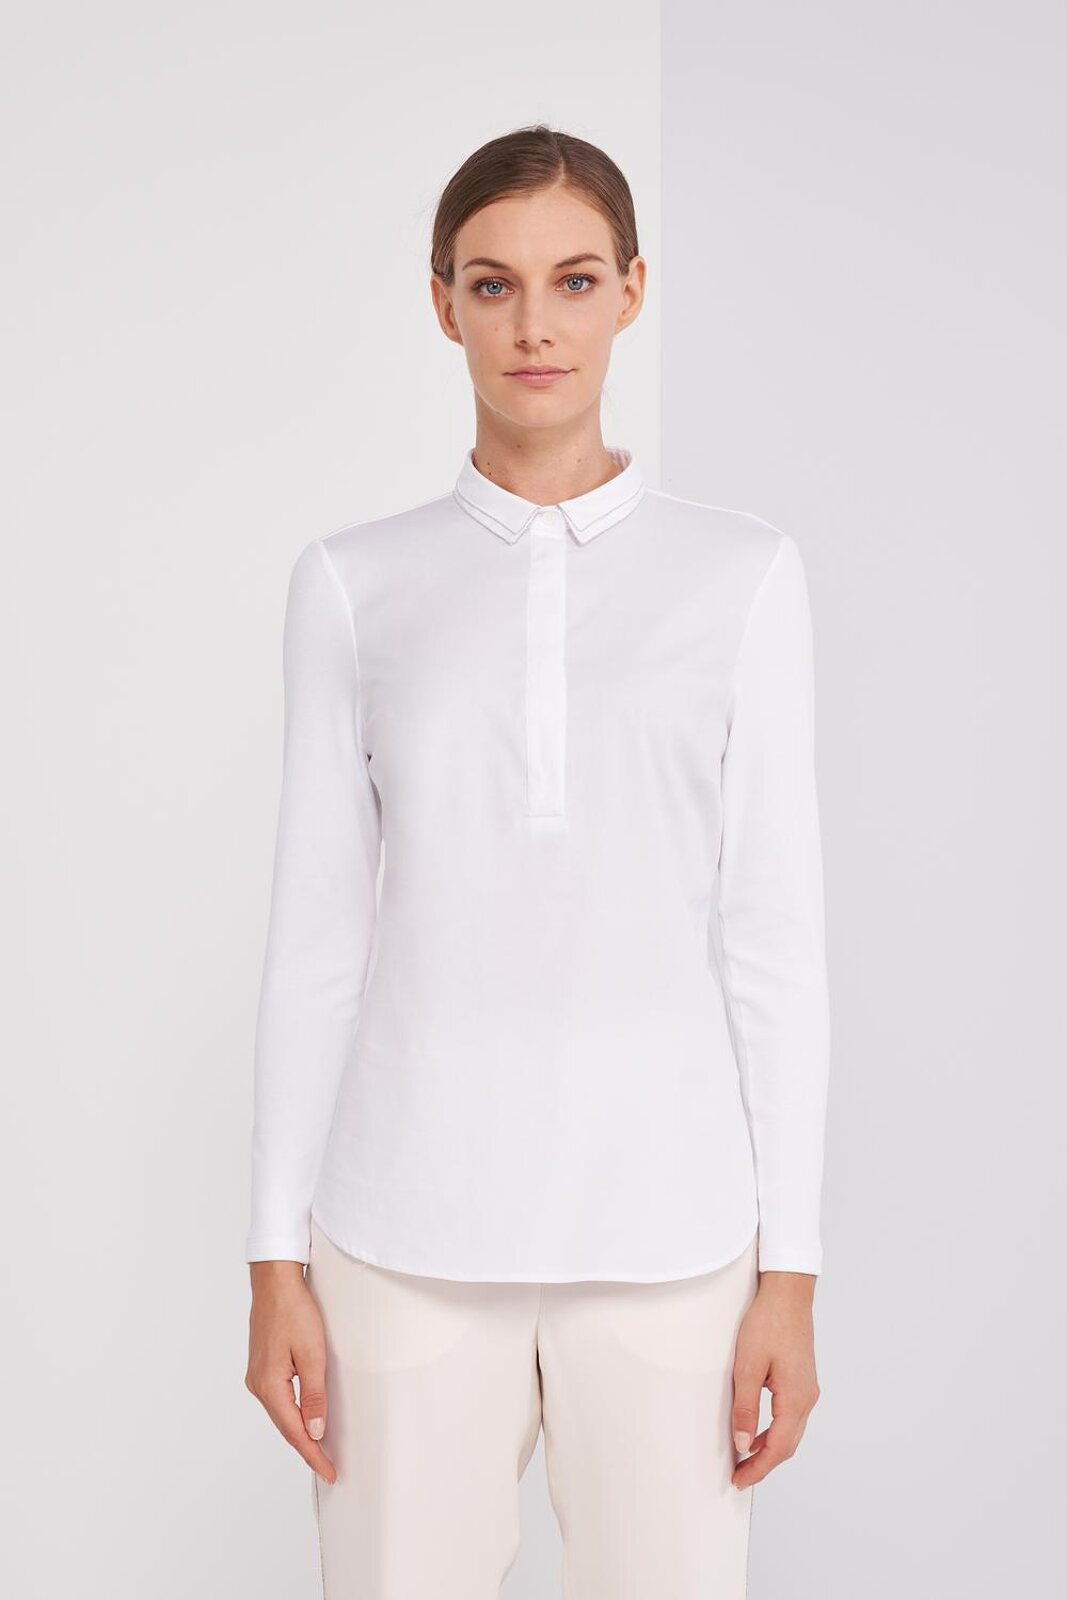 Pure Cotton Slightly Stretch Long Sleeve Shirt, Metallic Detail On The Collar. Slim fit. - Peserico